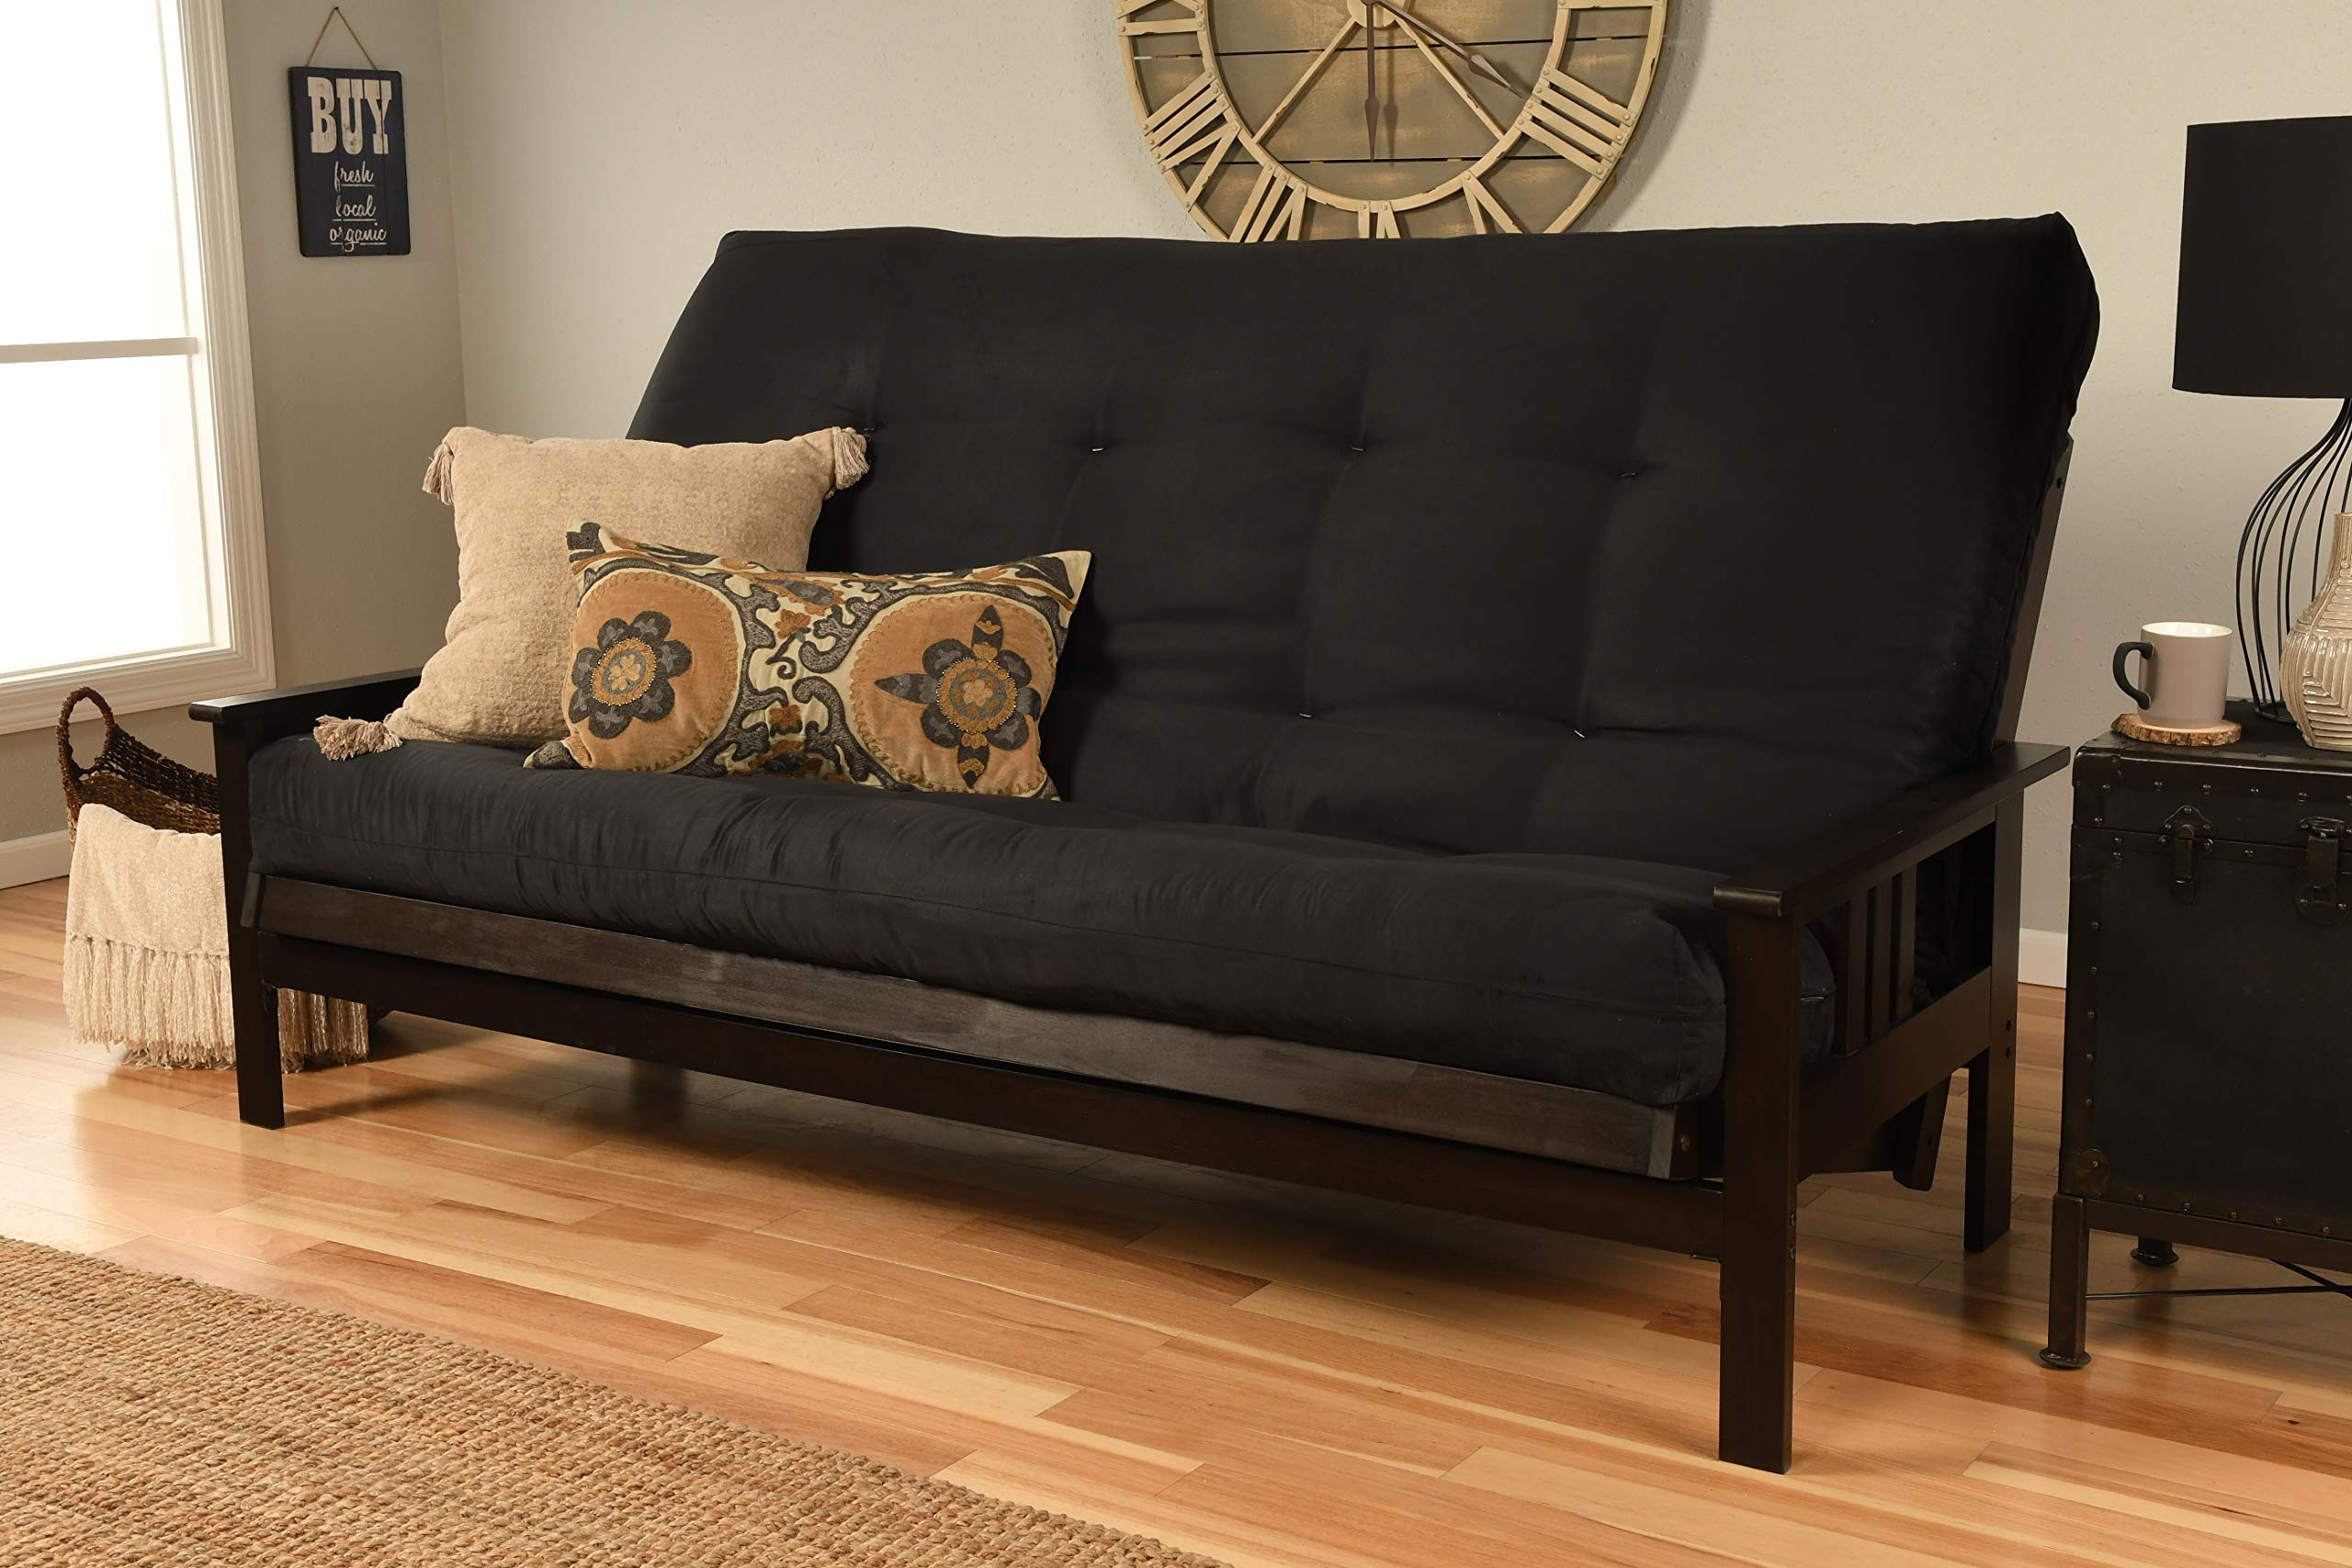 Jerry Sales Queen or Full Size Montreal | Espresso Futon Frame w/8 Inch Innerspring Mattress Sofa Bed Modern Futons (Black Mattress and Frame Only (Queen Size)) by Jerry Sales